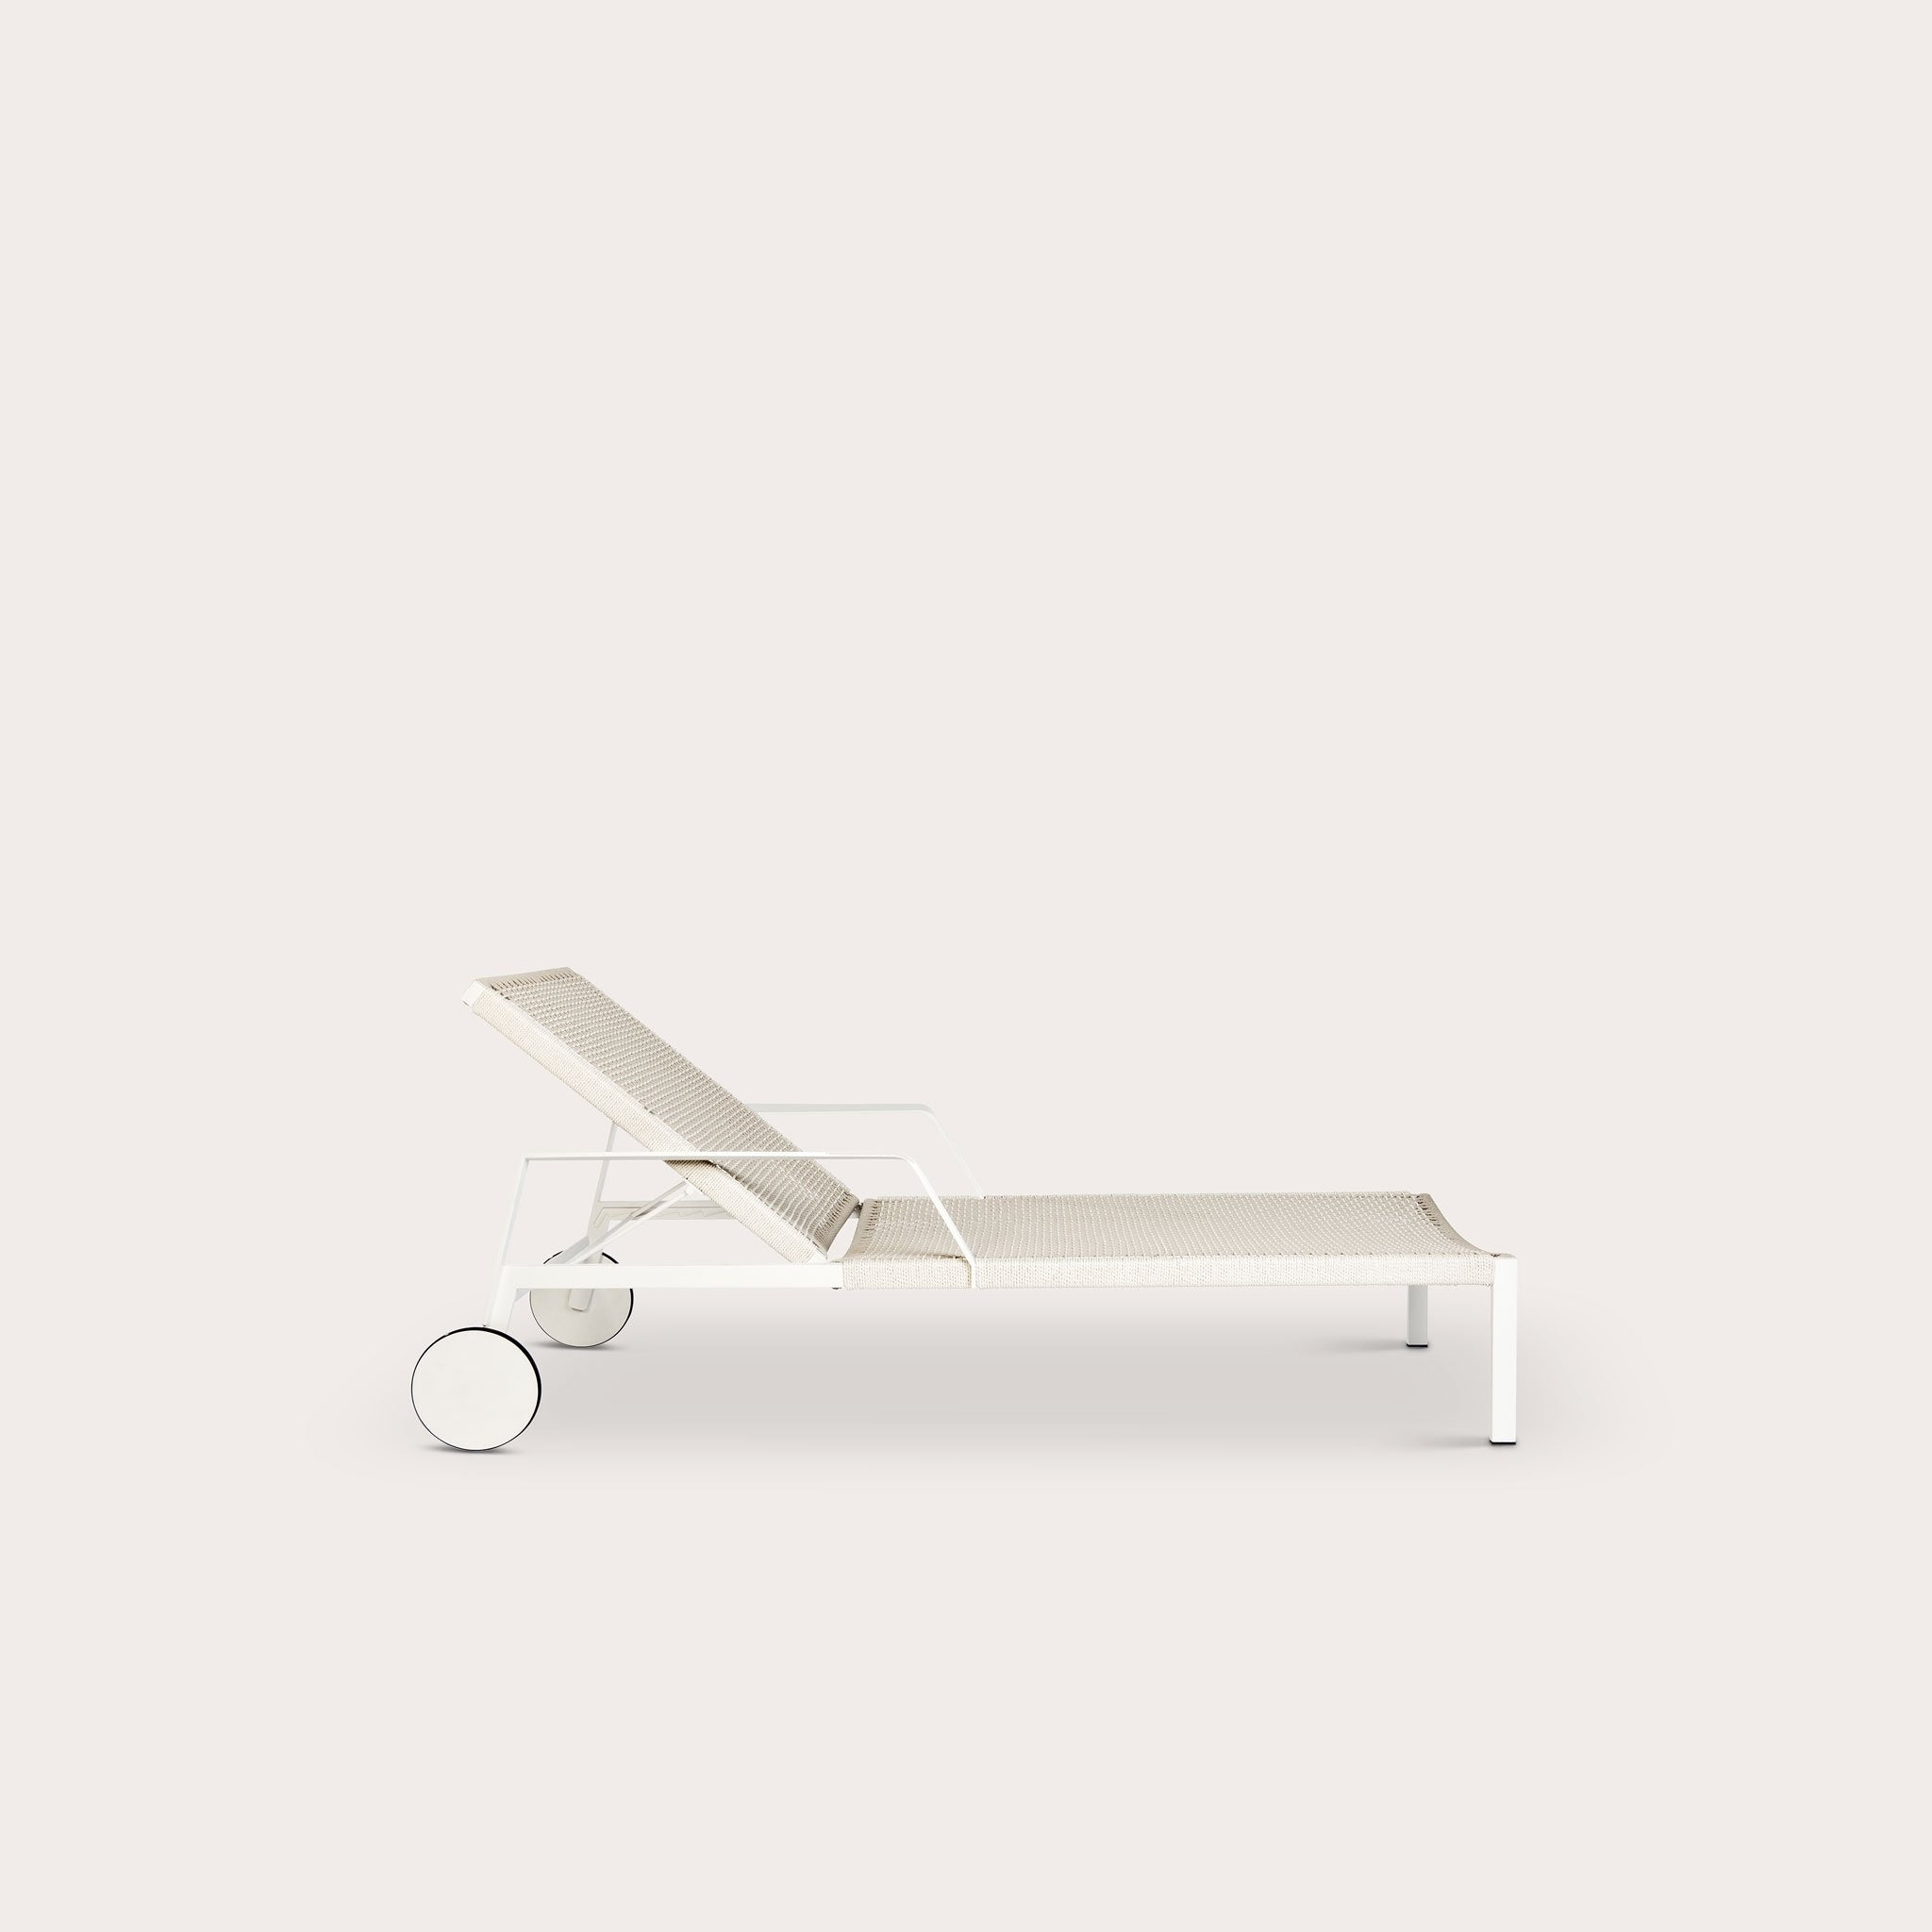 NODI Lounger Outdoor Yabu Pushelberg Designer Furniture Sku: 007-200-11489